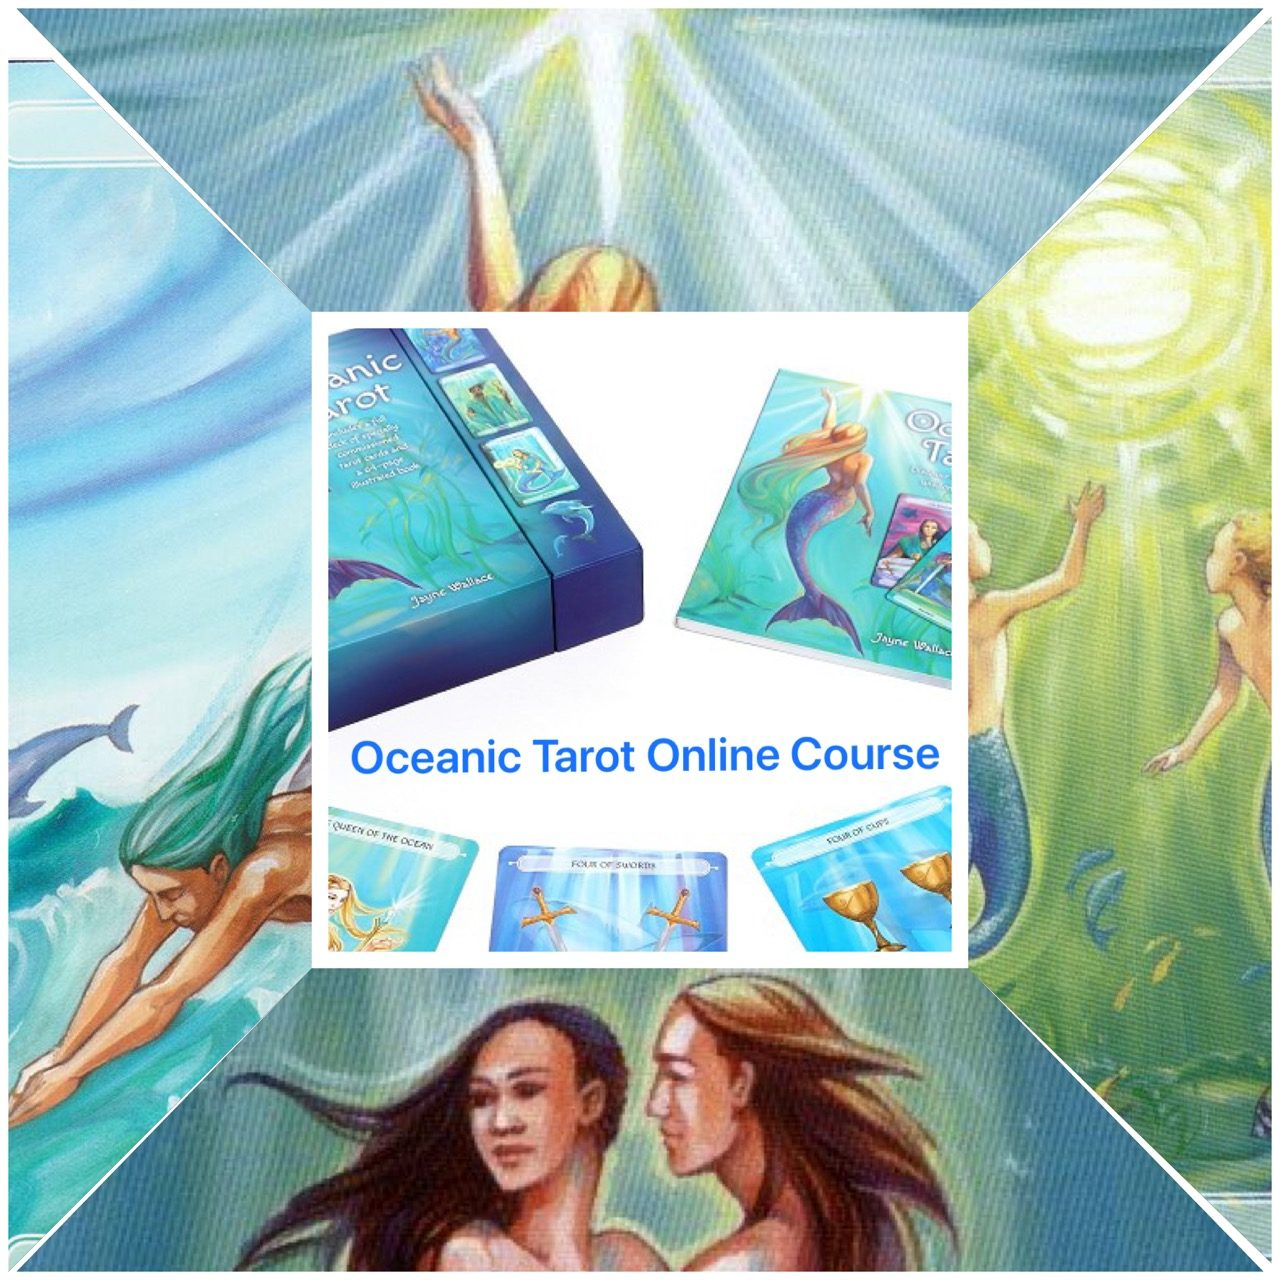 Oceanic Tarot Course - Nines - Week 10